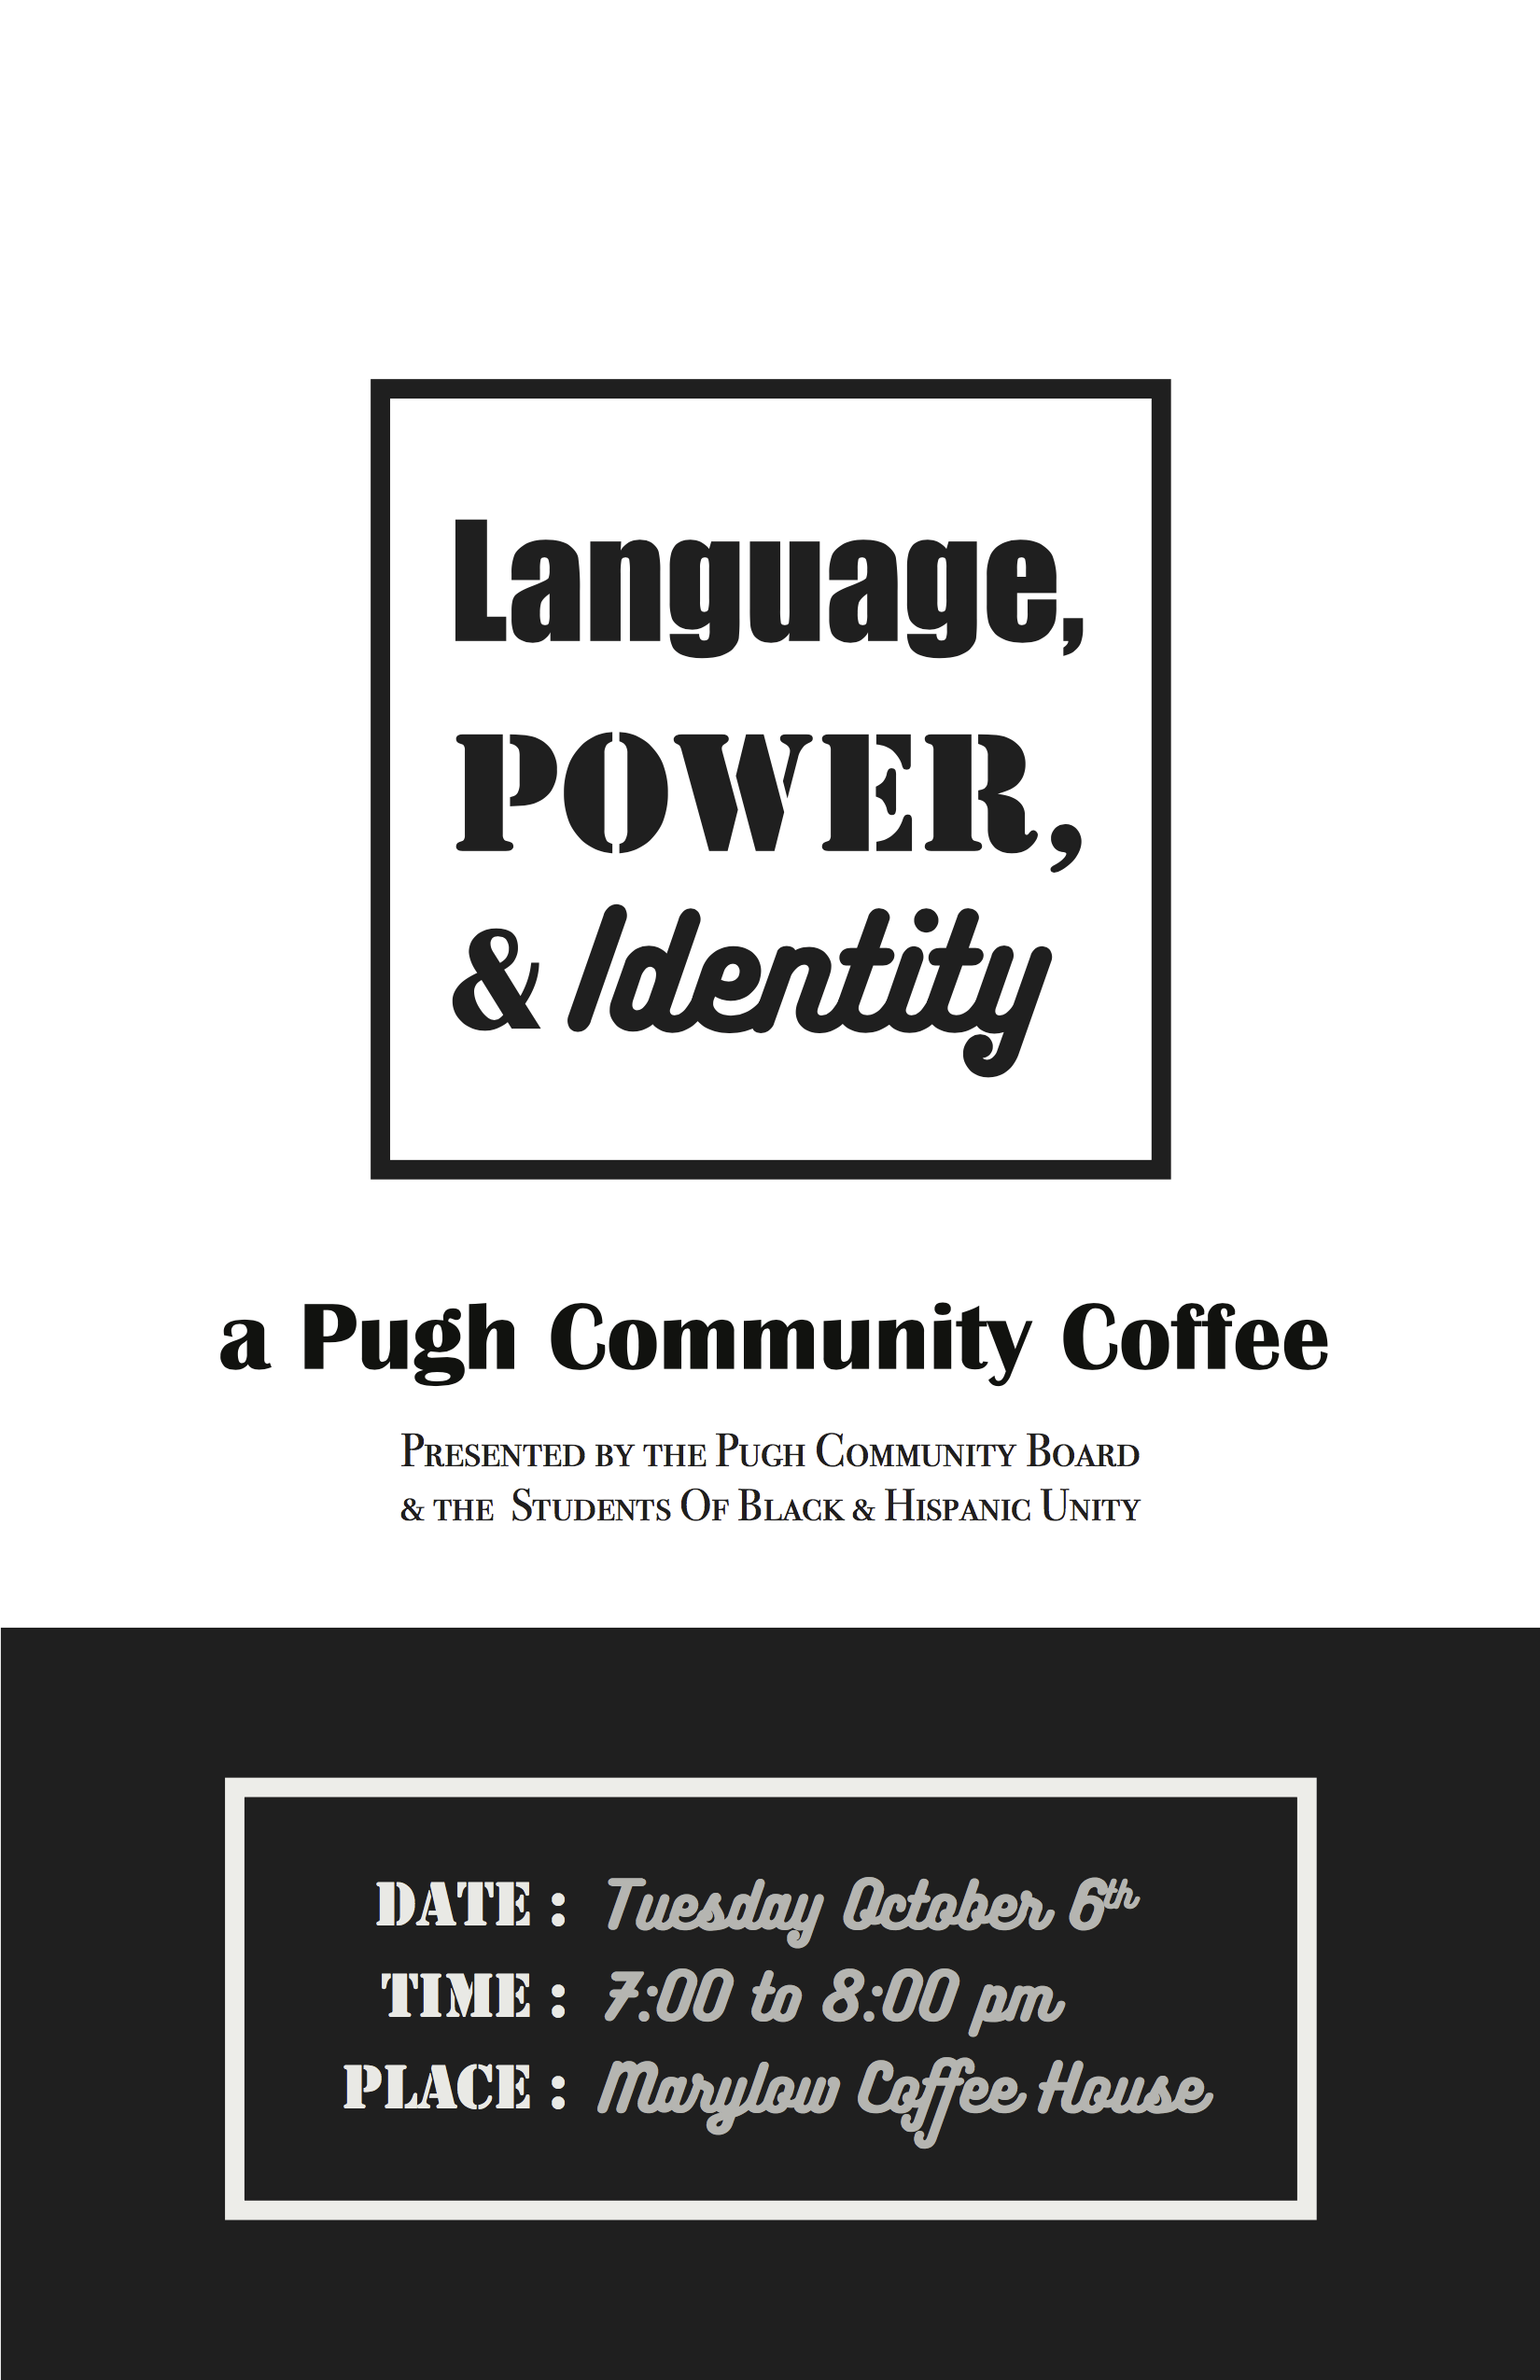 language_power_identity copy.png